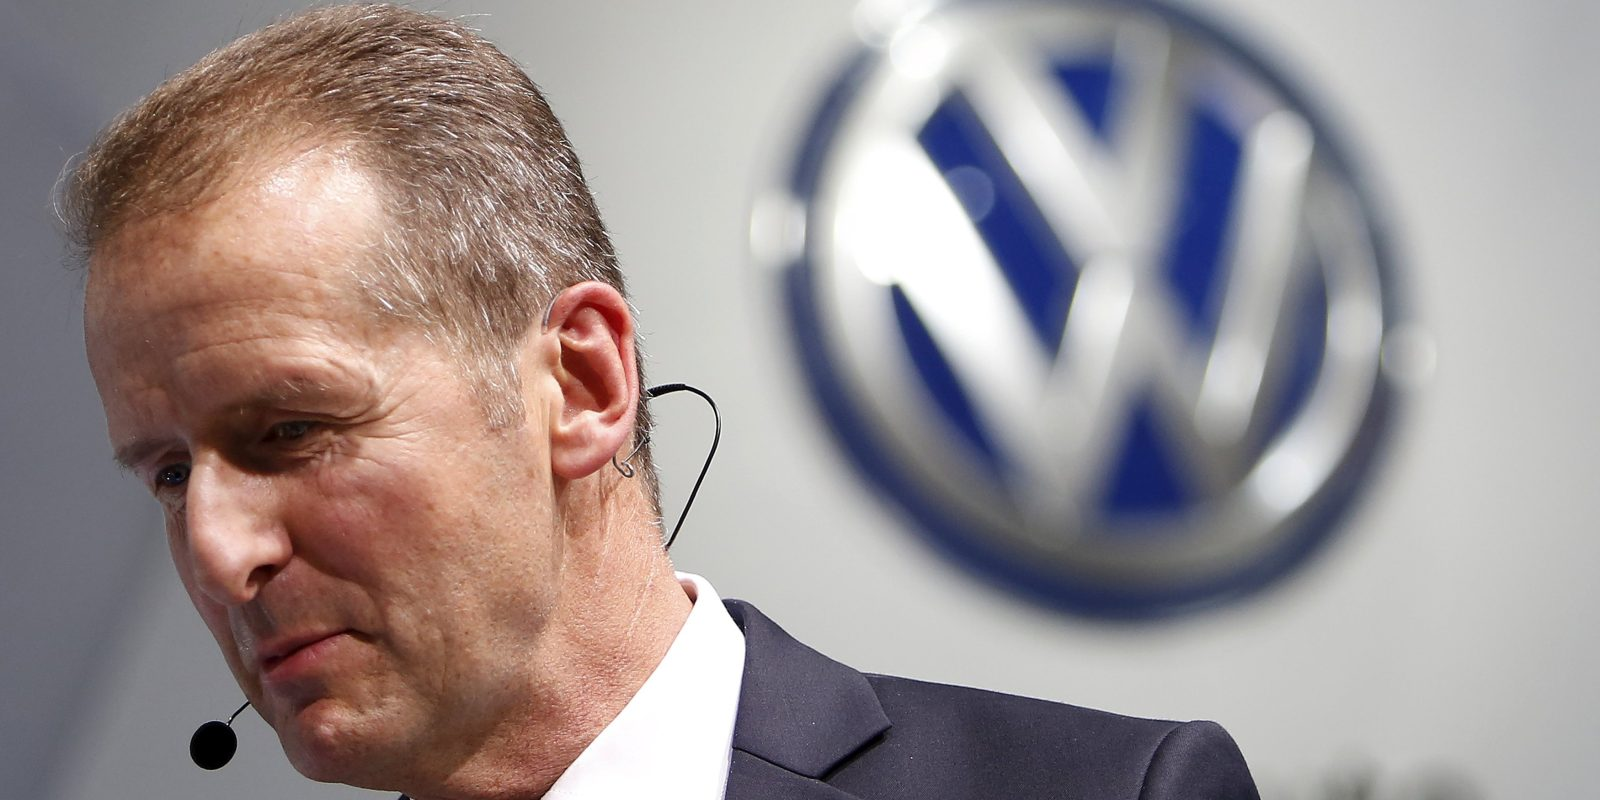 VW brand chairman sees Tesla as their main competitor